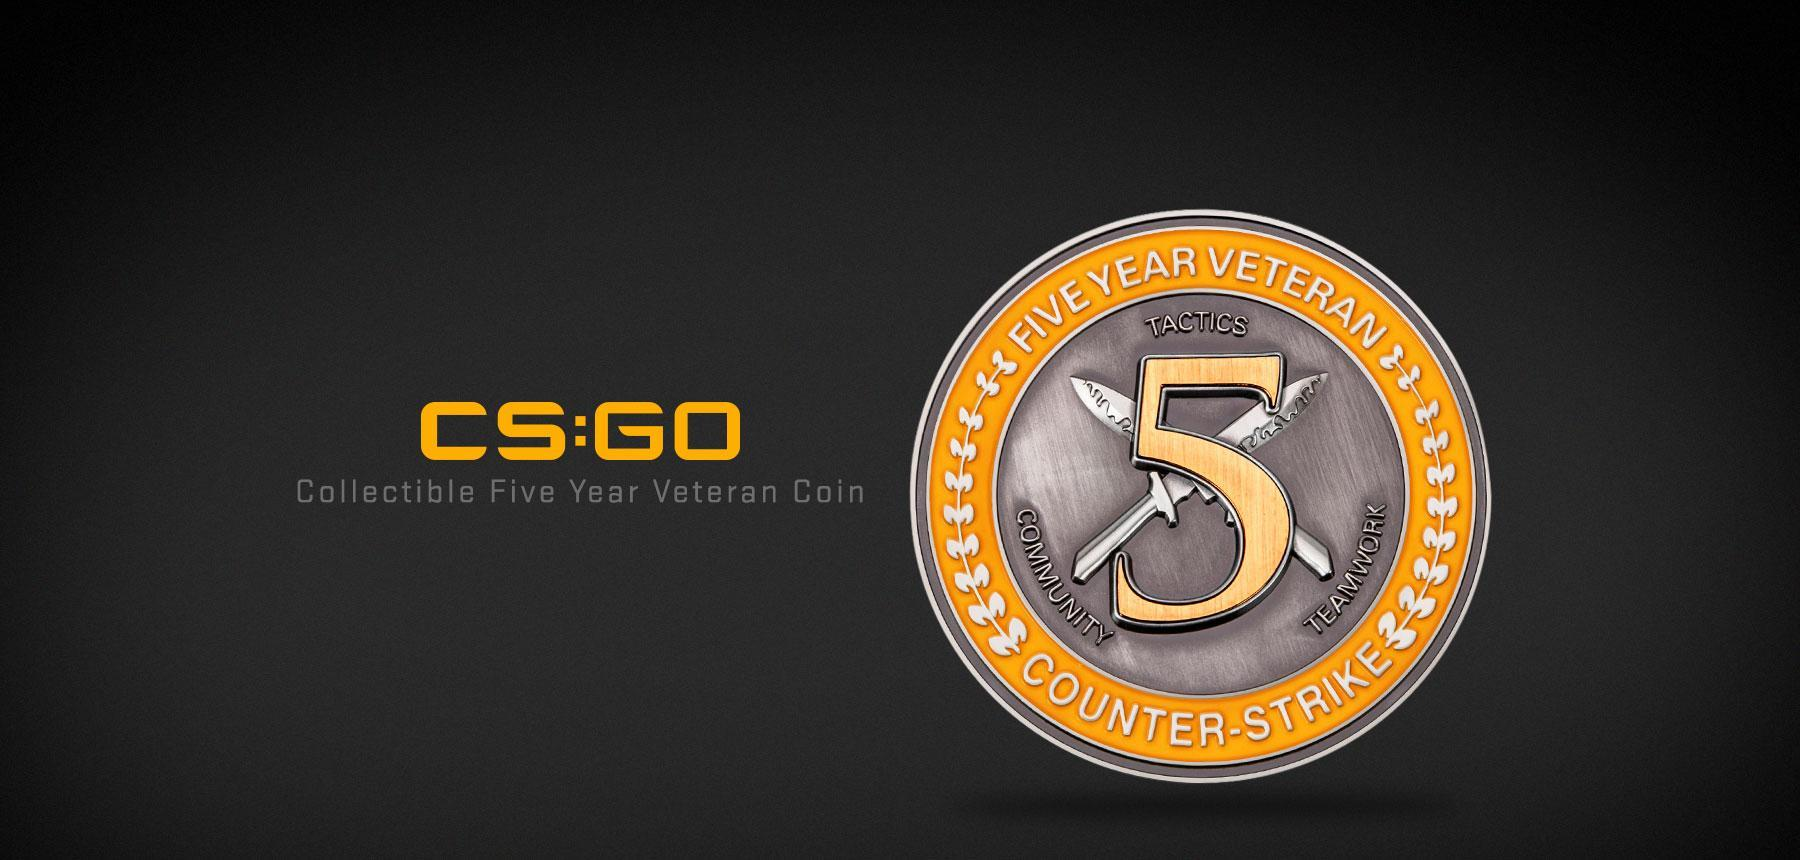 Cs go 1v1 coin 3ds - Find nearest coinstar store